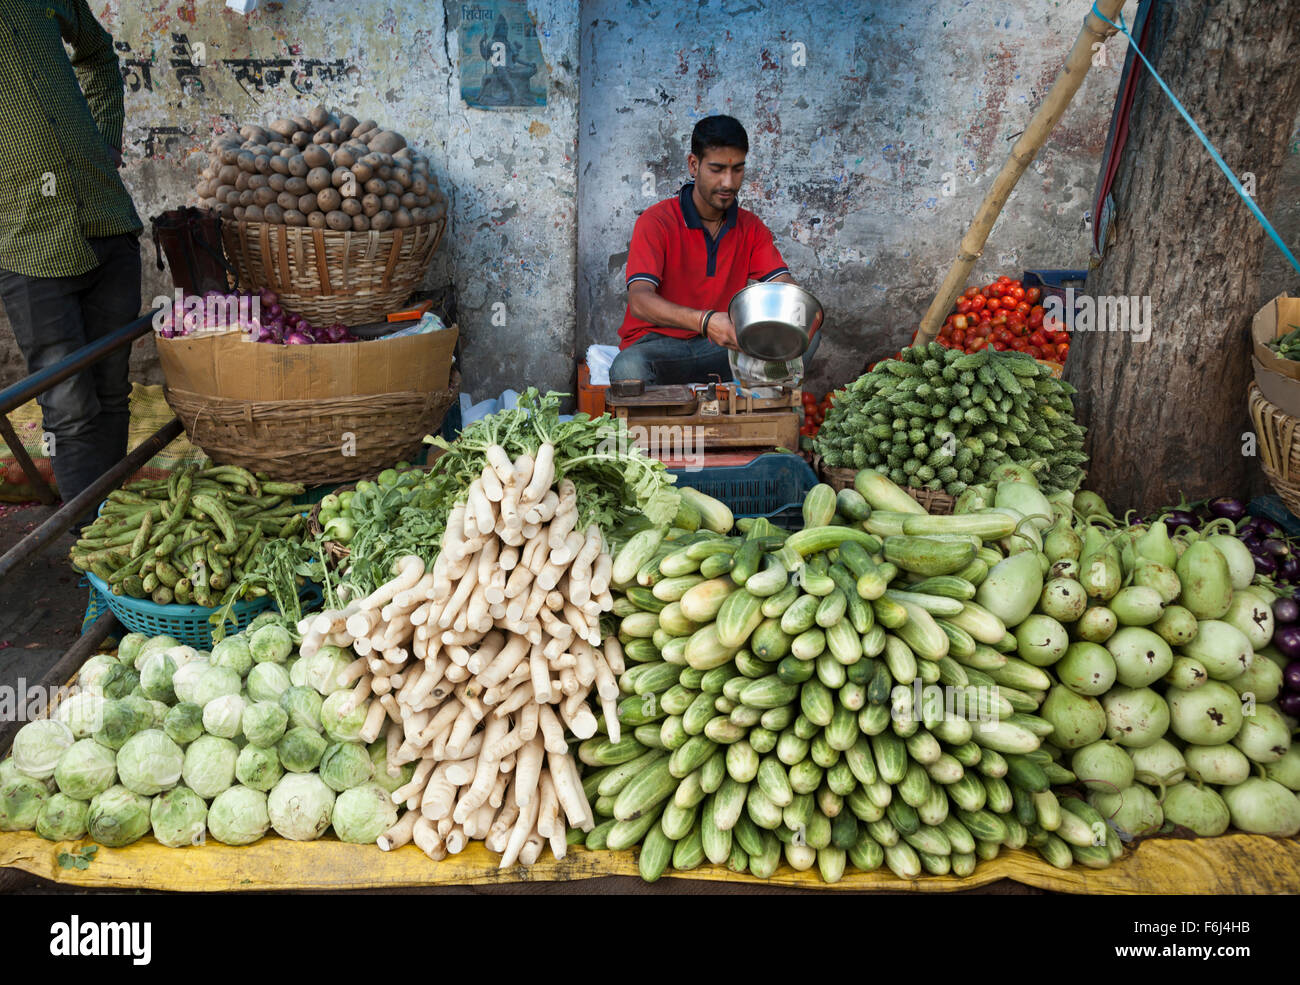 Vegetable stall in market at Chamba in the northern Indian state of Himachal Pradesh, India - Stock Image